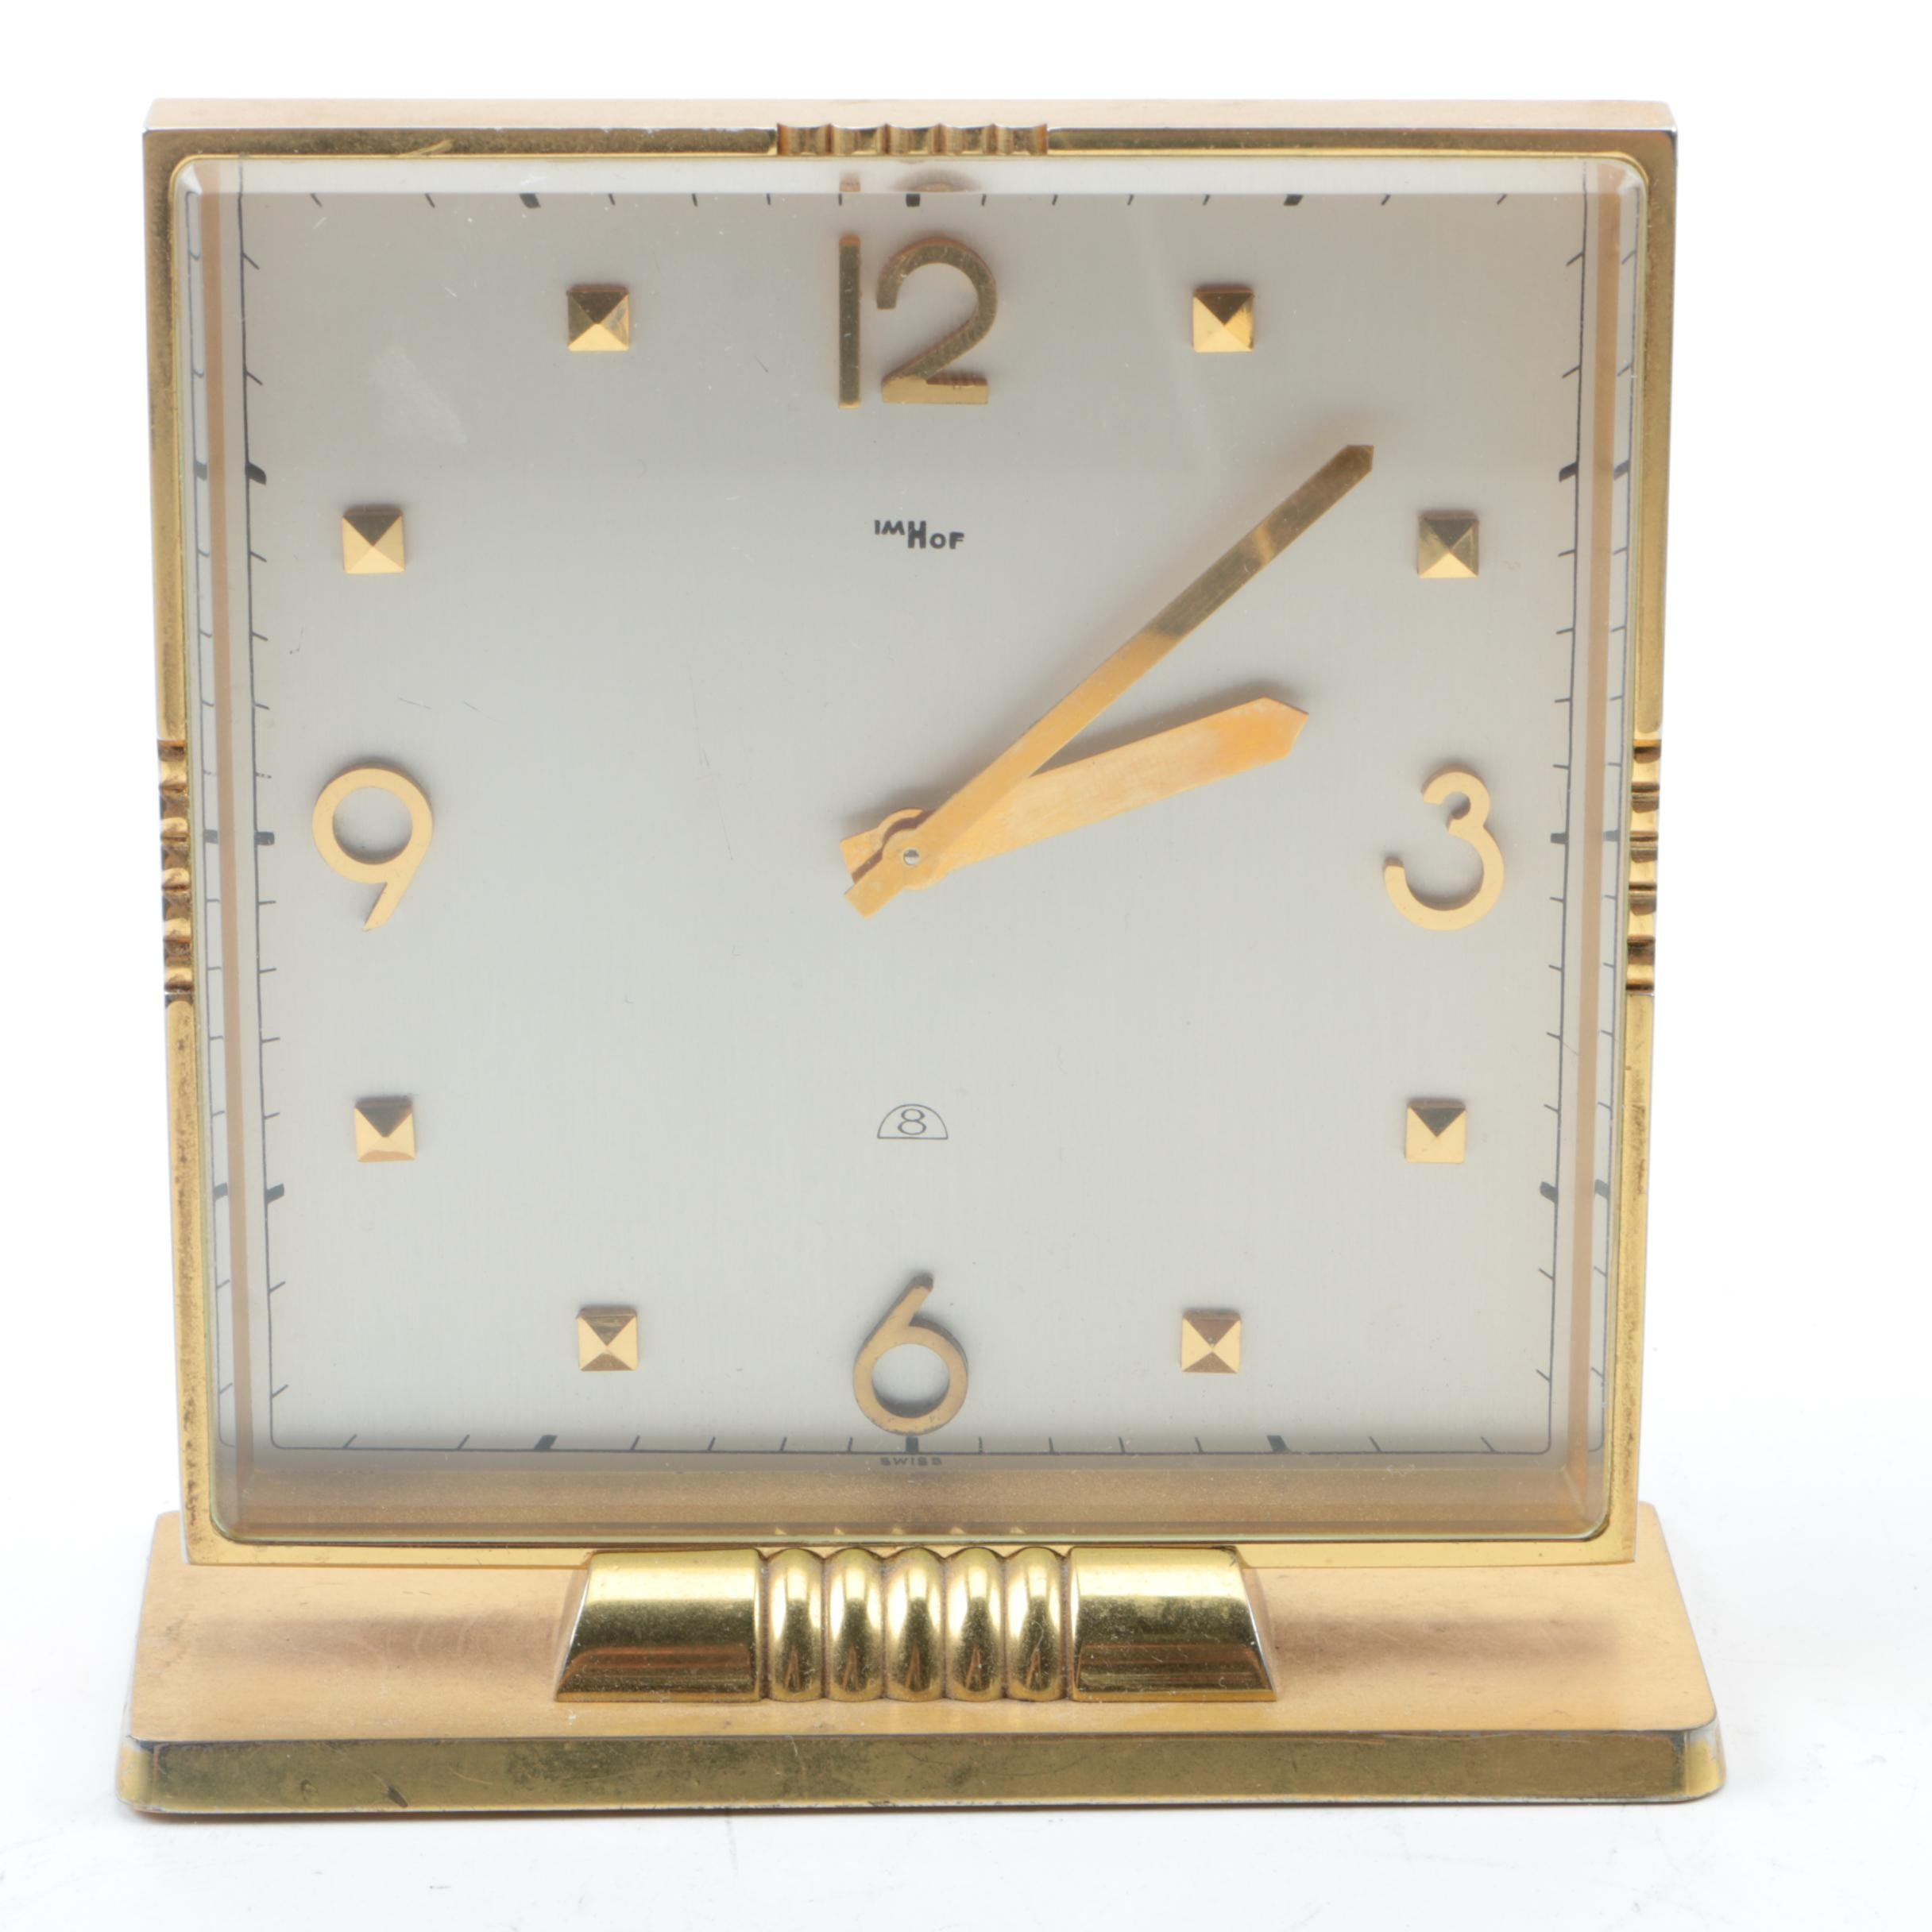 Imhof Swiss Art Deco Shelf Clock